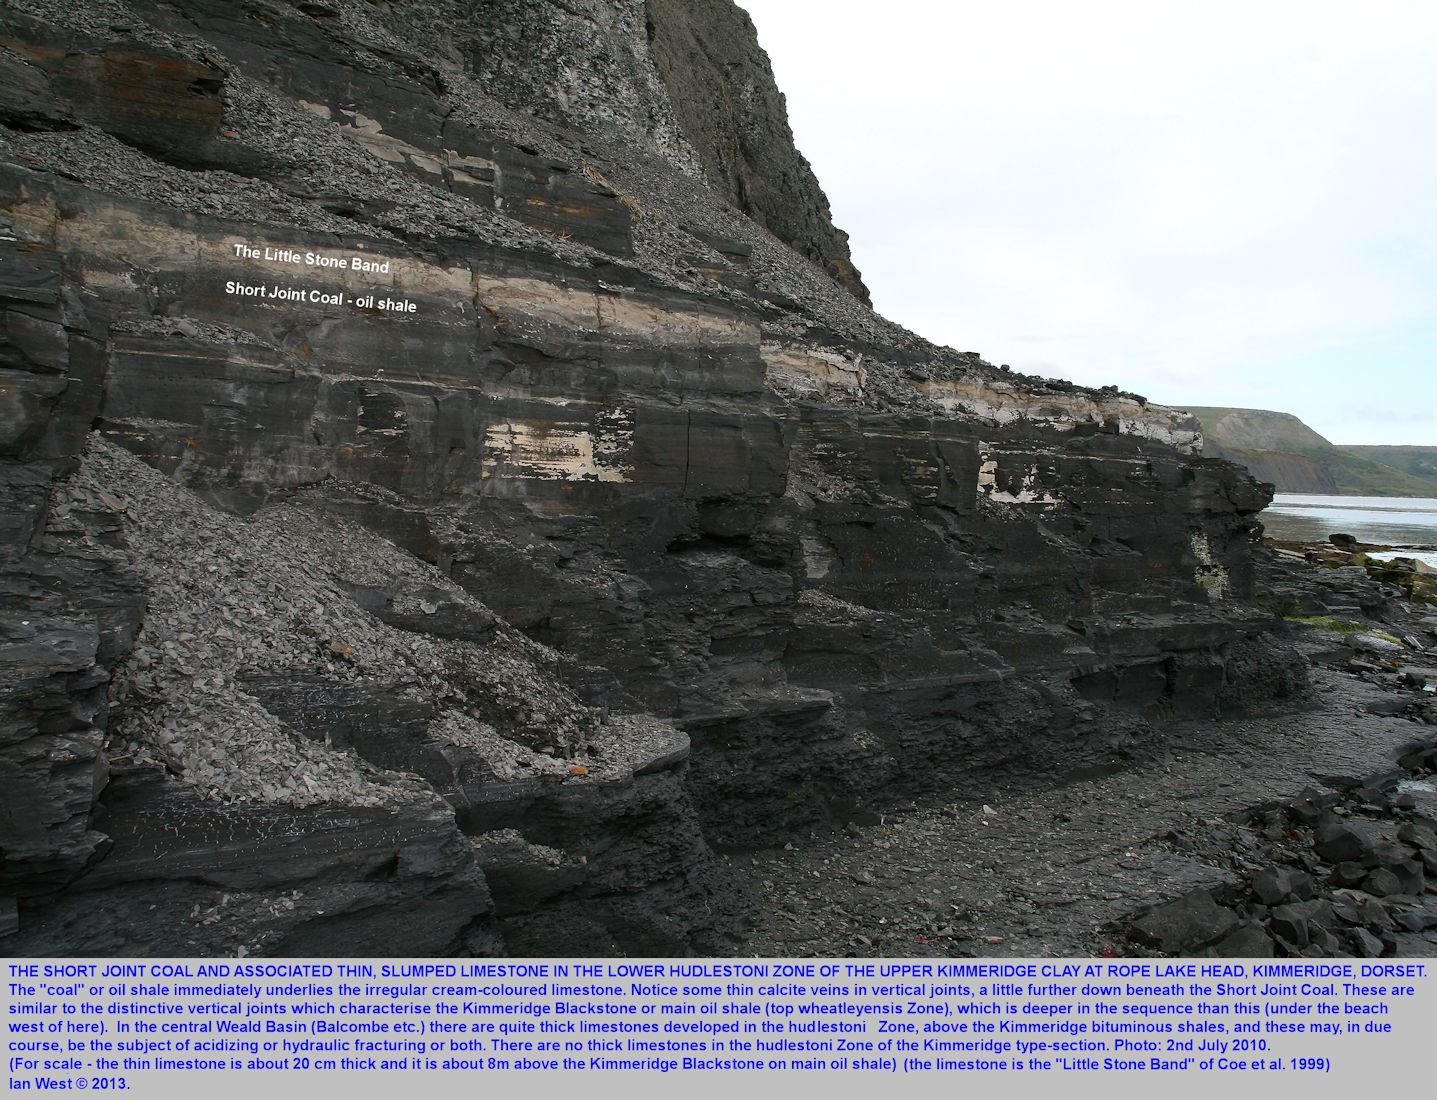 The Little Stone Band and the Short Joint Coal at Rope Lake Head, Kimmeridge, Dorset